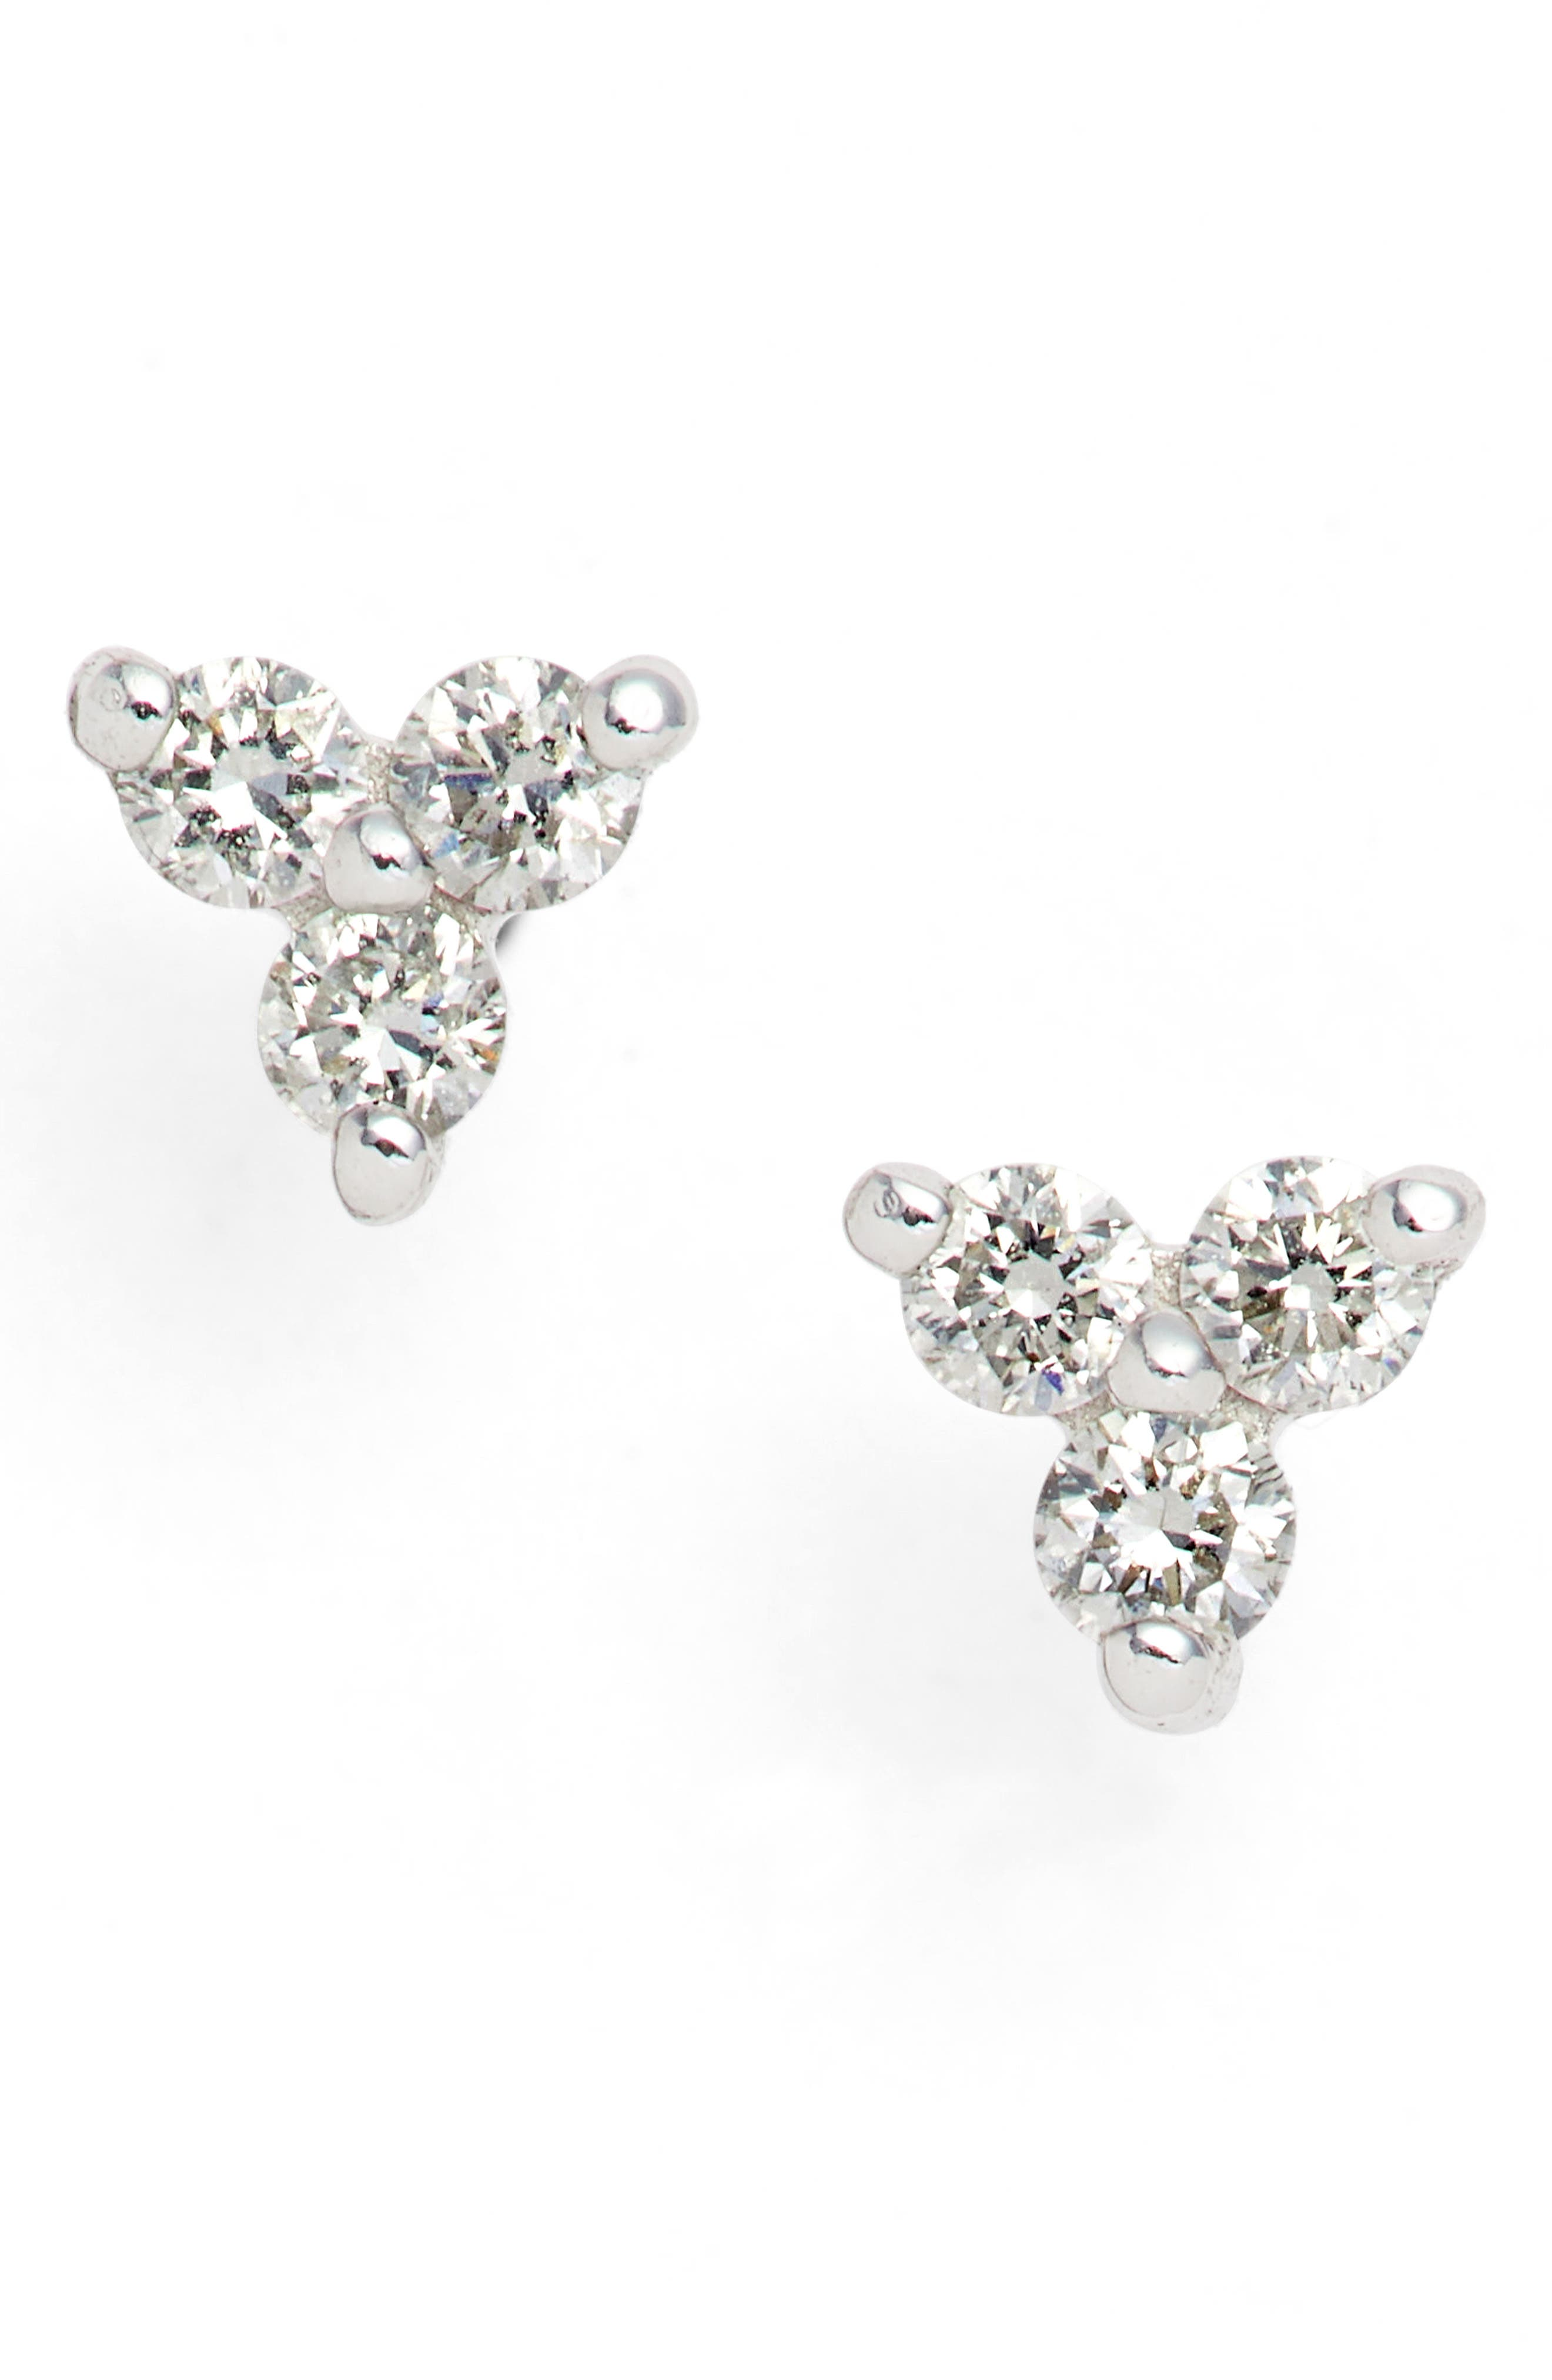 Alternate Image 1 Selected - Bony Levy Liora Diamond Stud Earrings (Nordstrom Exclusive)